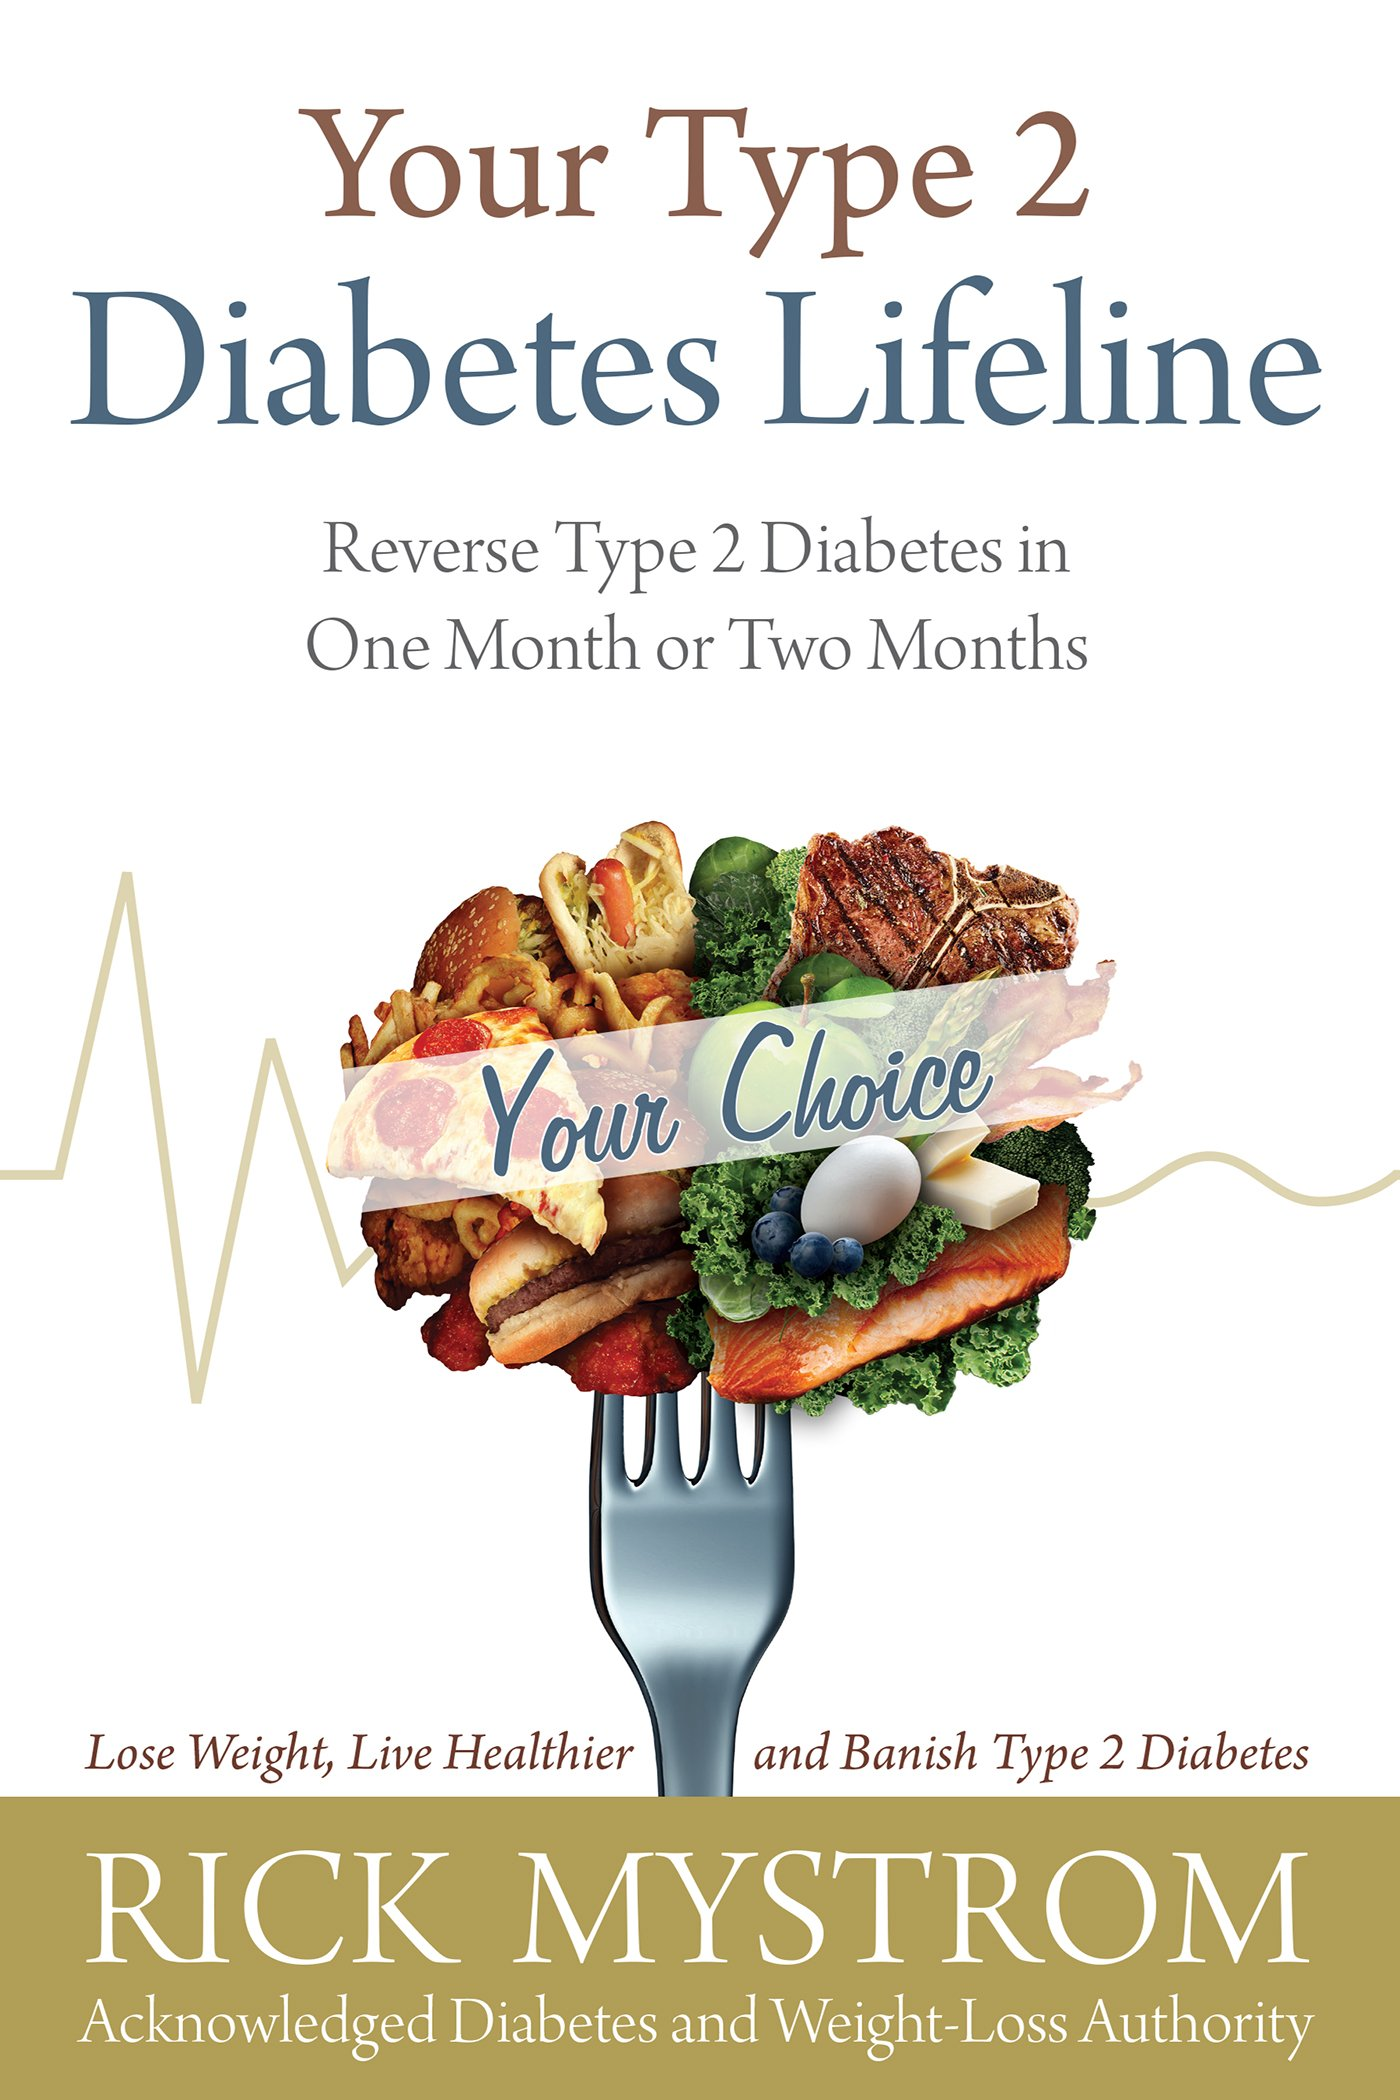 Your Type 2 Diabetes Lifeline: Reverse Type 2 Diabetes in One Month or Two  Months: 9781594337192: Amazon.com: Books